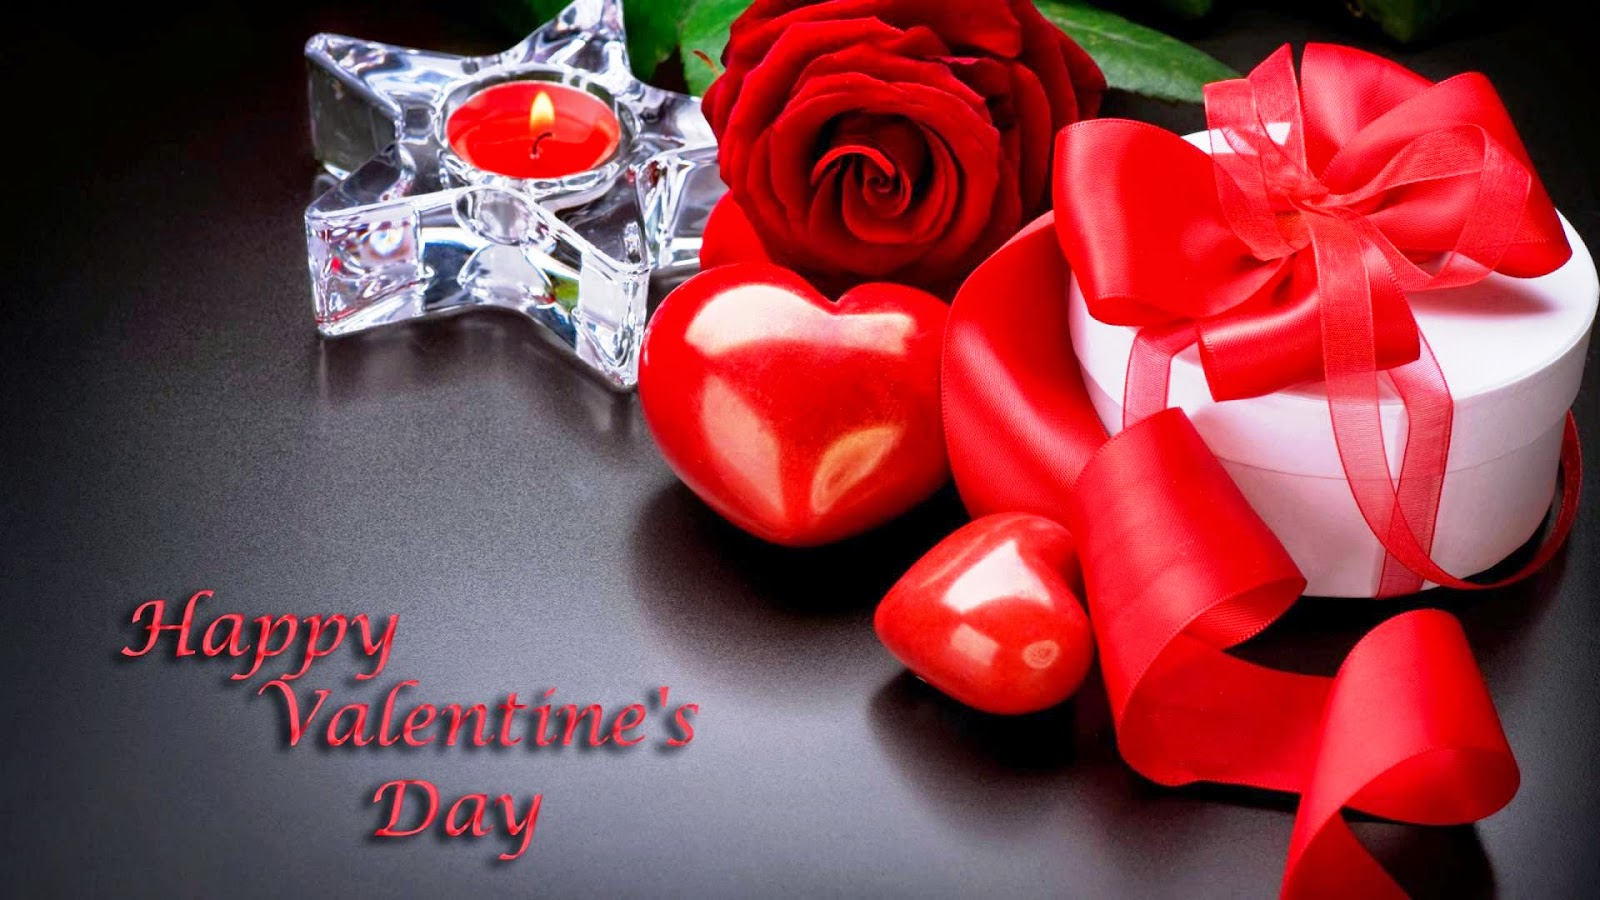 Happy Valentines Day Latest Wallpaper 2015 Hd Images For Facebook